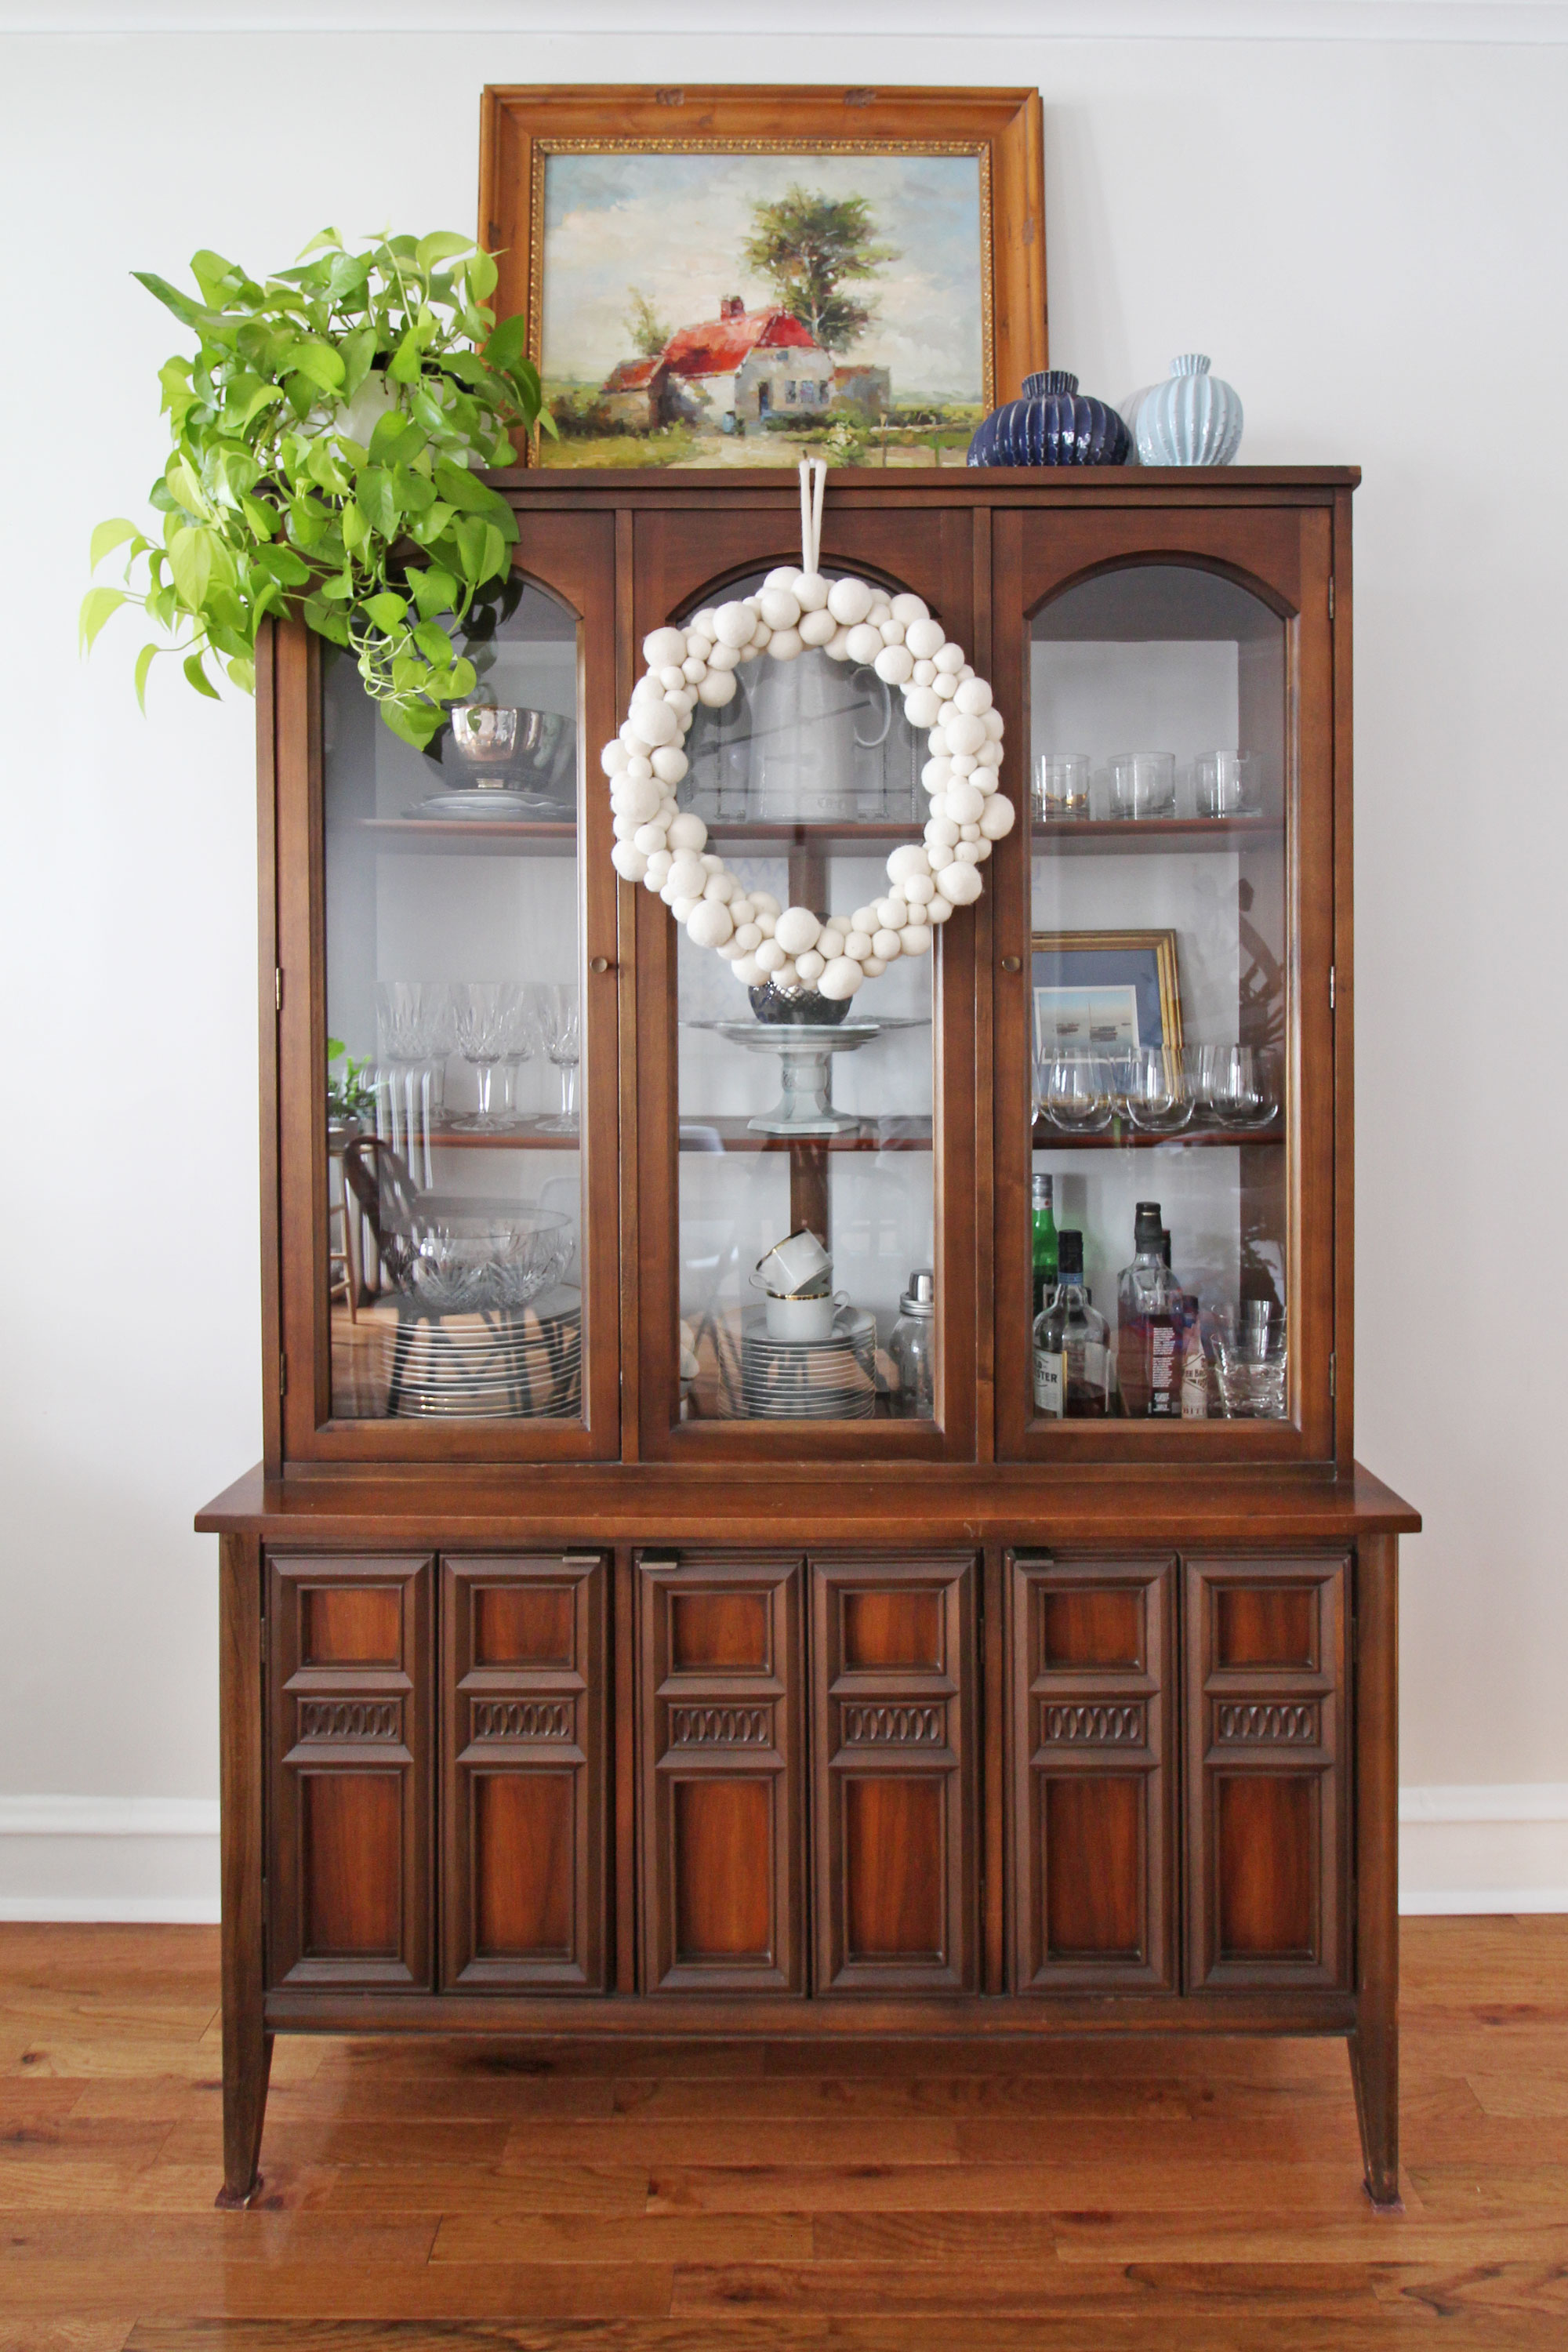 A simple way to add a little bit of Christmas cheer in your home is to hang a wreath in an unexpected spot. Here, I added a white felt ball wreath to our mid-century modern china cabinet. It's the perfect touch of holiday spirit for our dining room. Christmas decorating can be simple and easy!